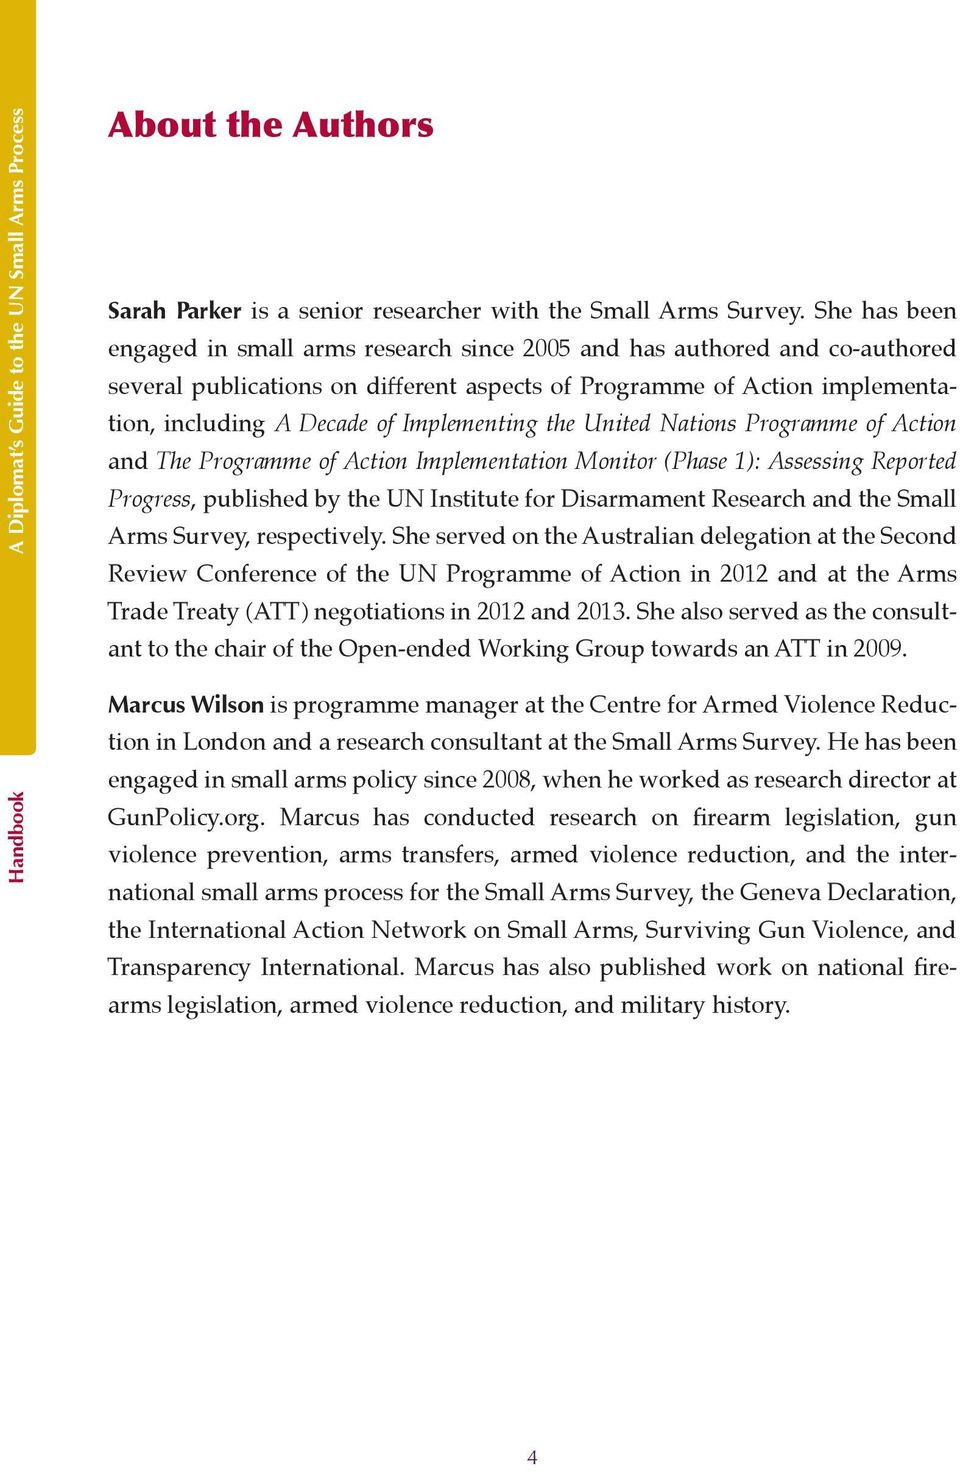 Implementing the United Nations Programme of Action and The Programme of Action Implementation Monitor (Phase 1): Assessing Reported Progress, published by the UN Institute for Disarmament Research